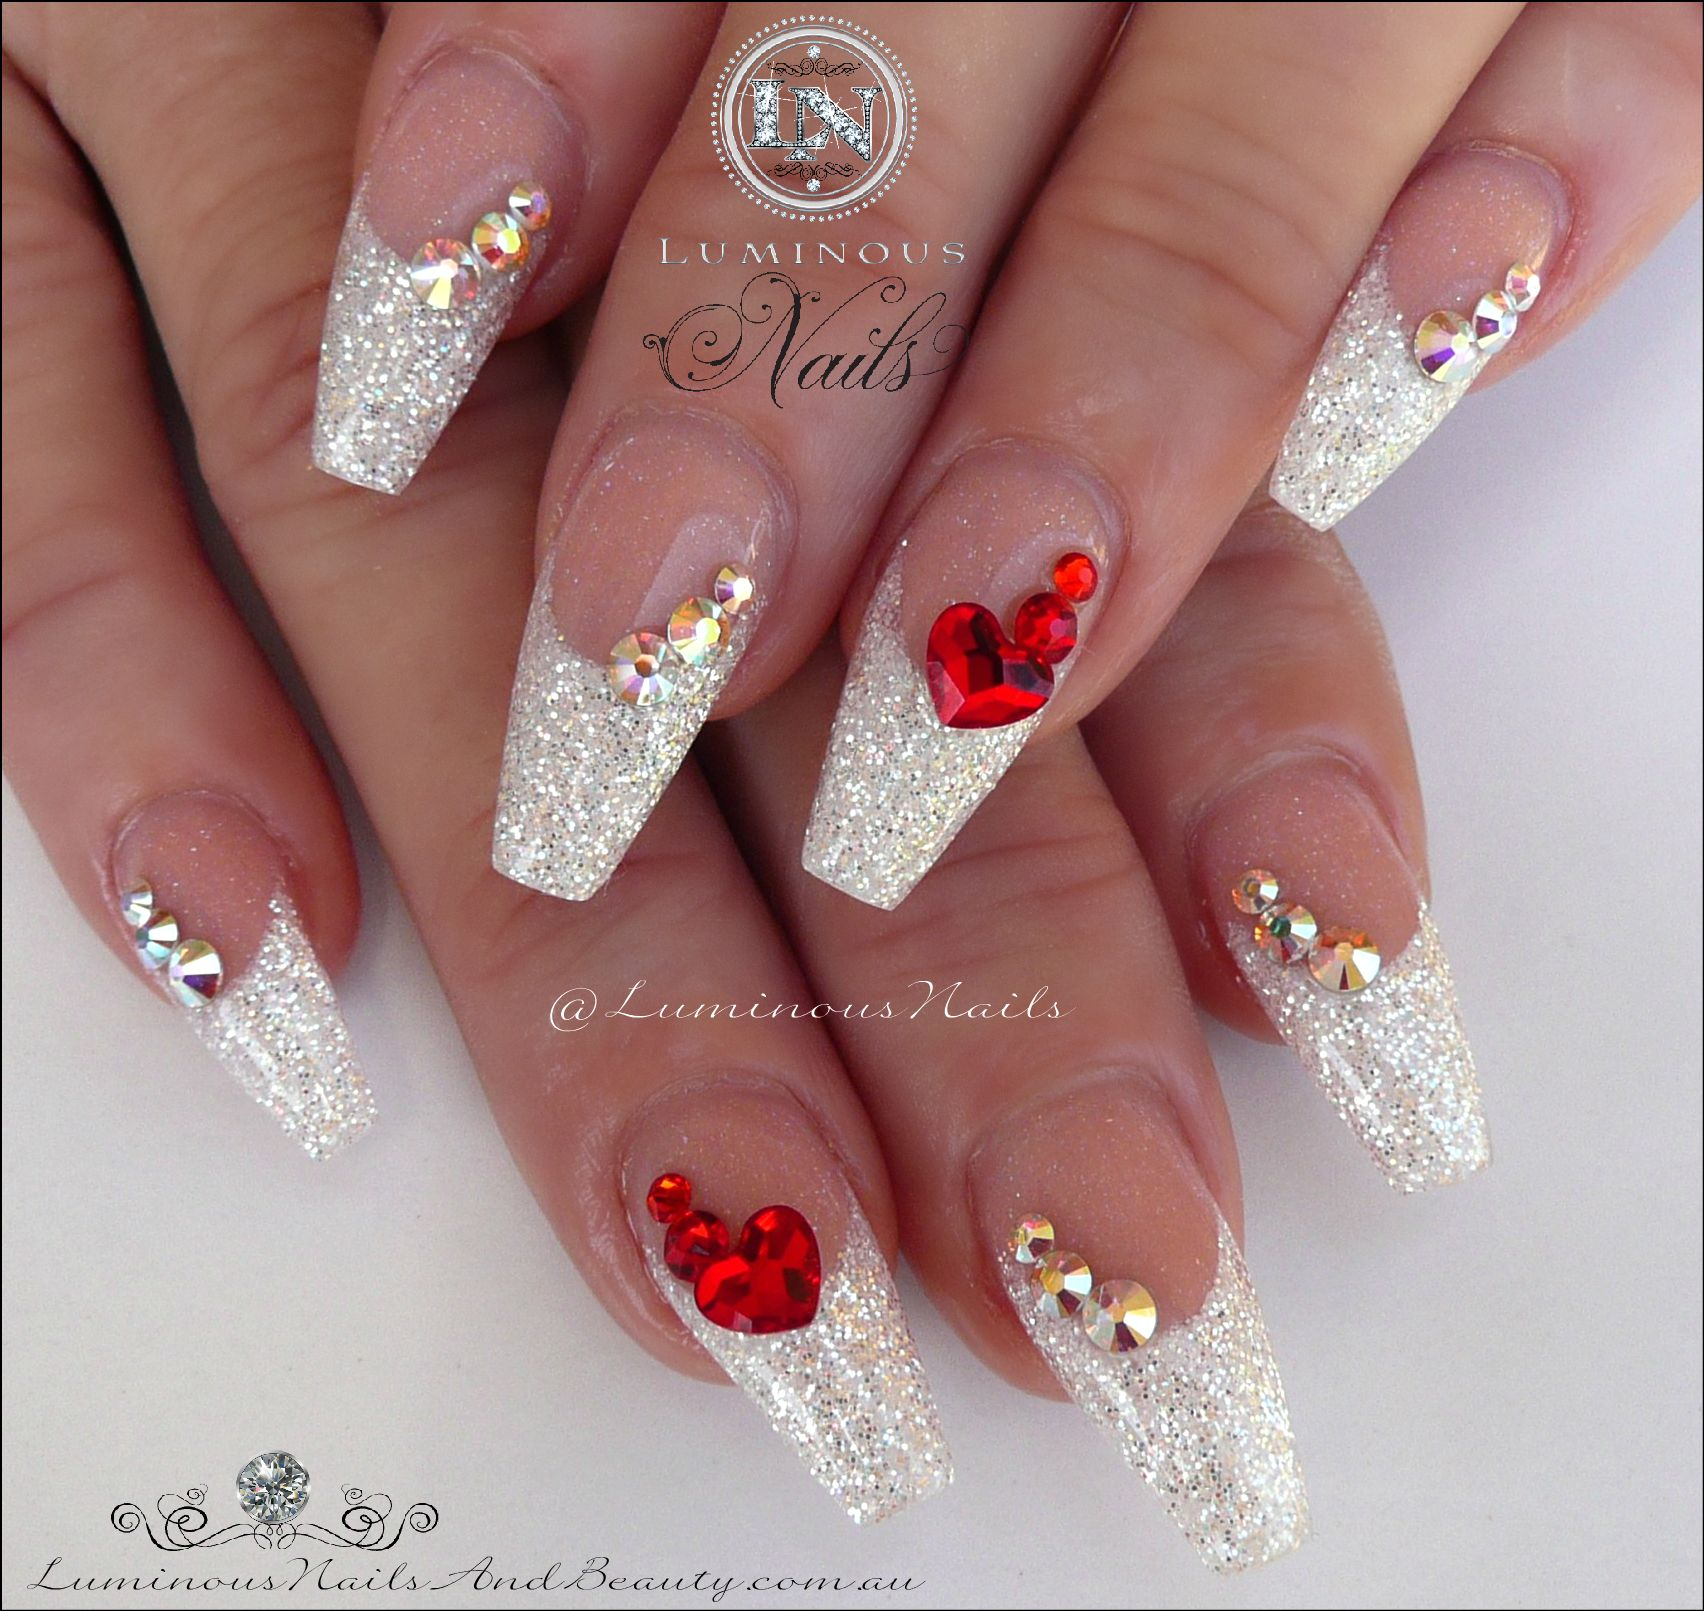 White Christmas Acrylic Nails With A Touch Of Red Nail Designs Valentines Valentines Nails White Acrylic Nails